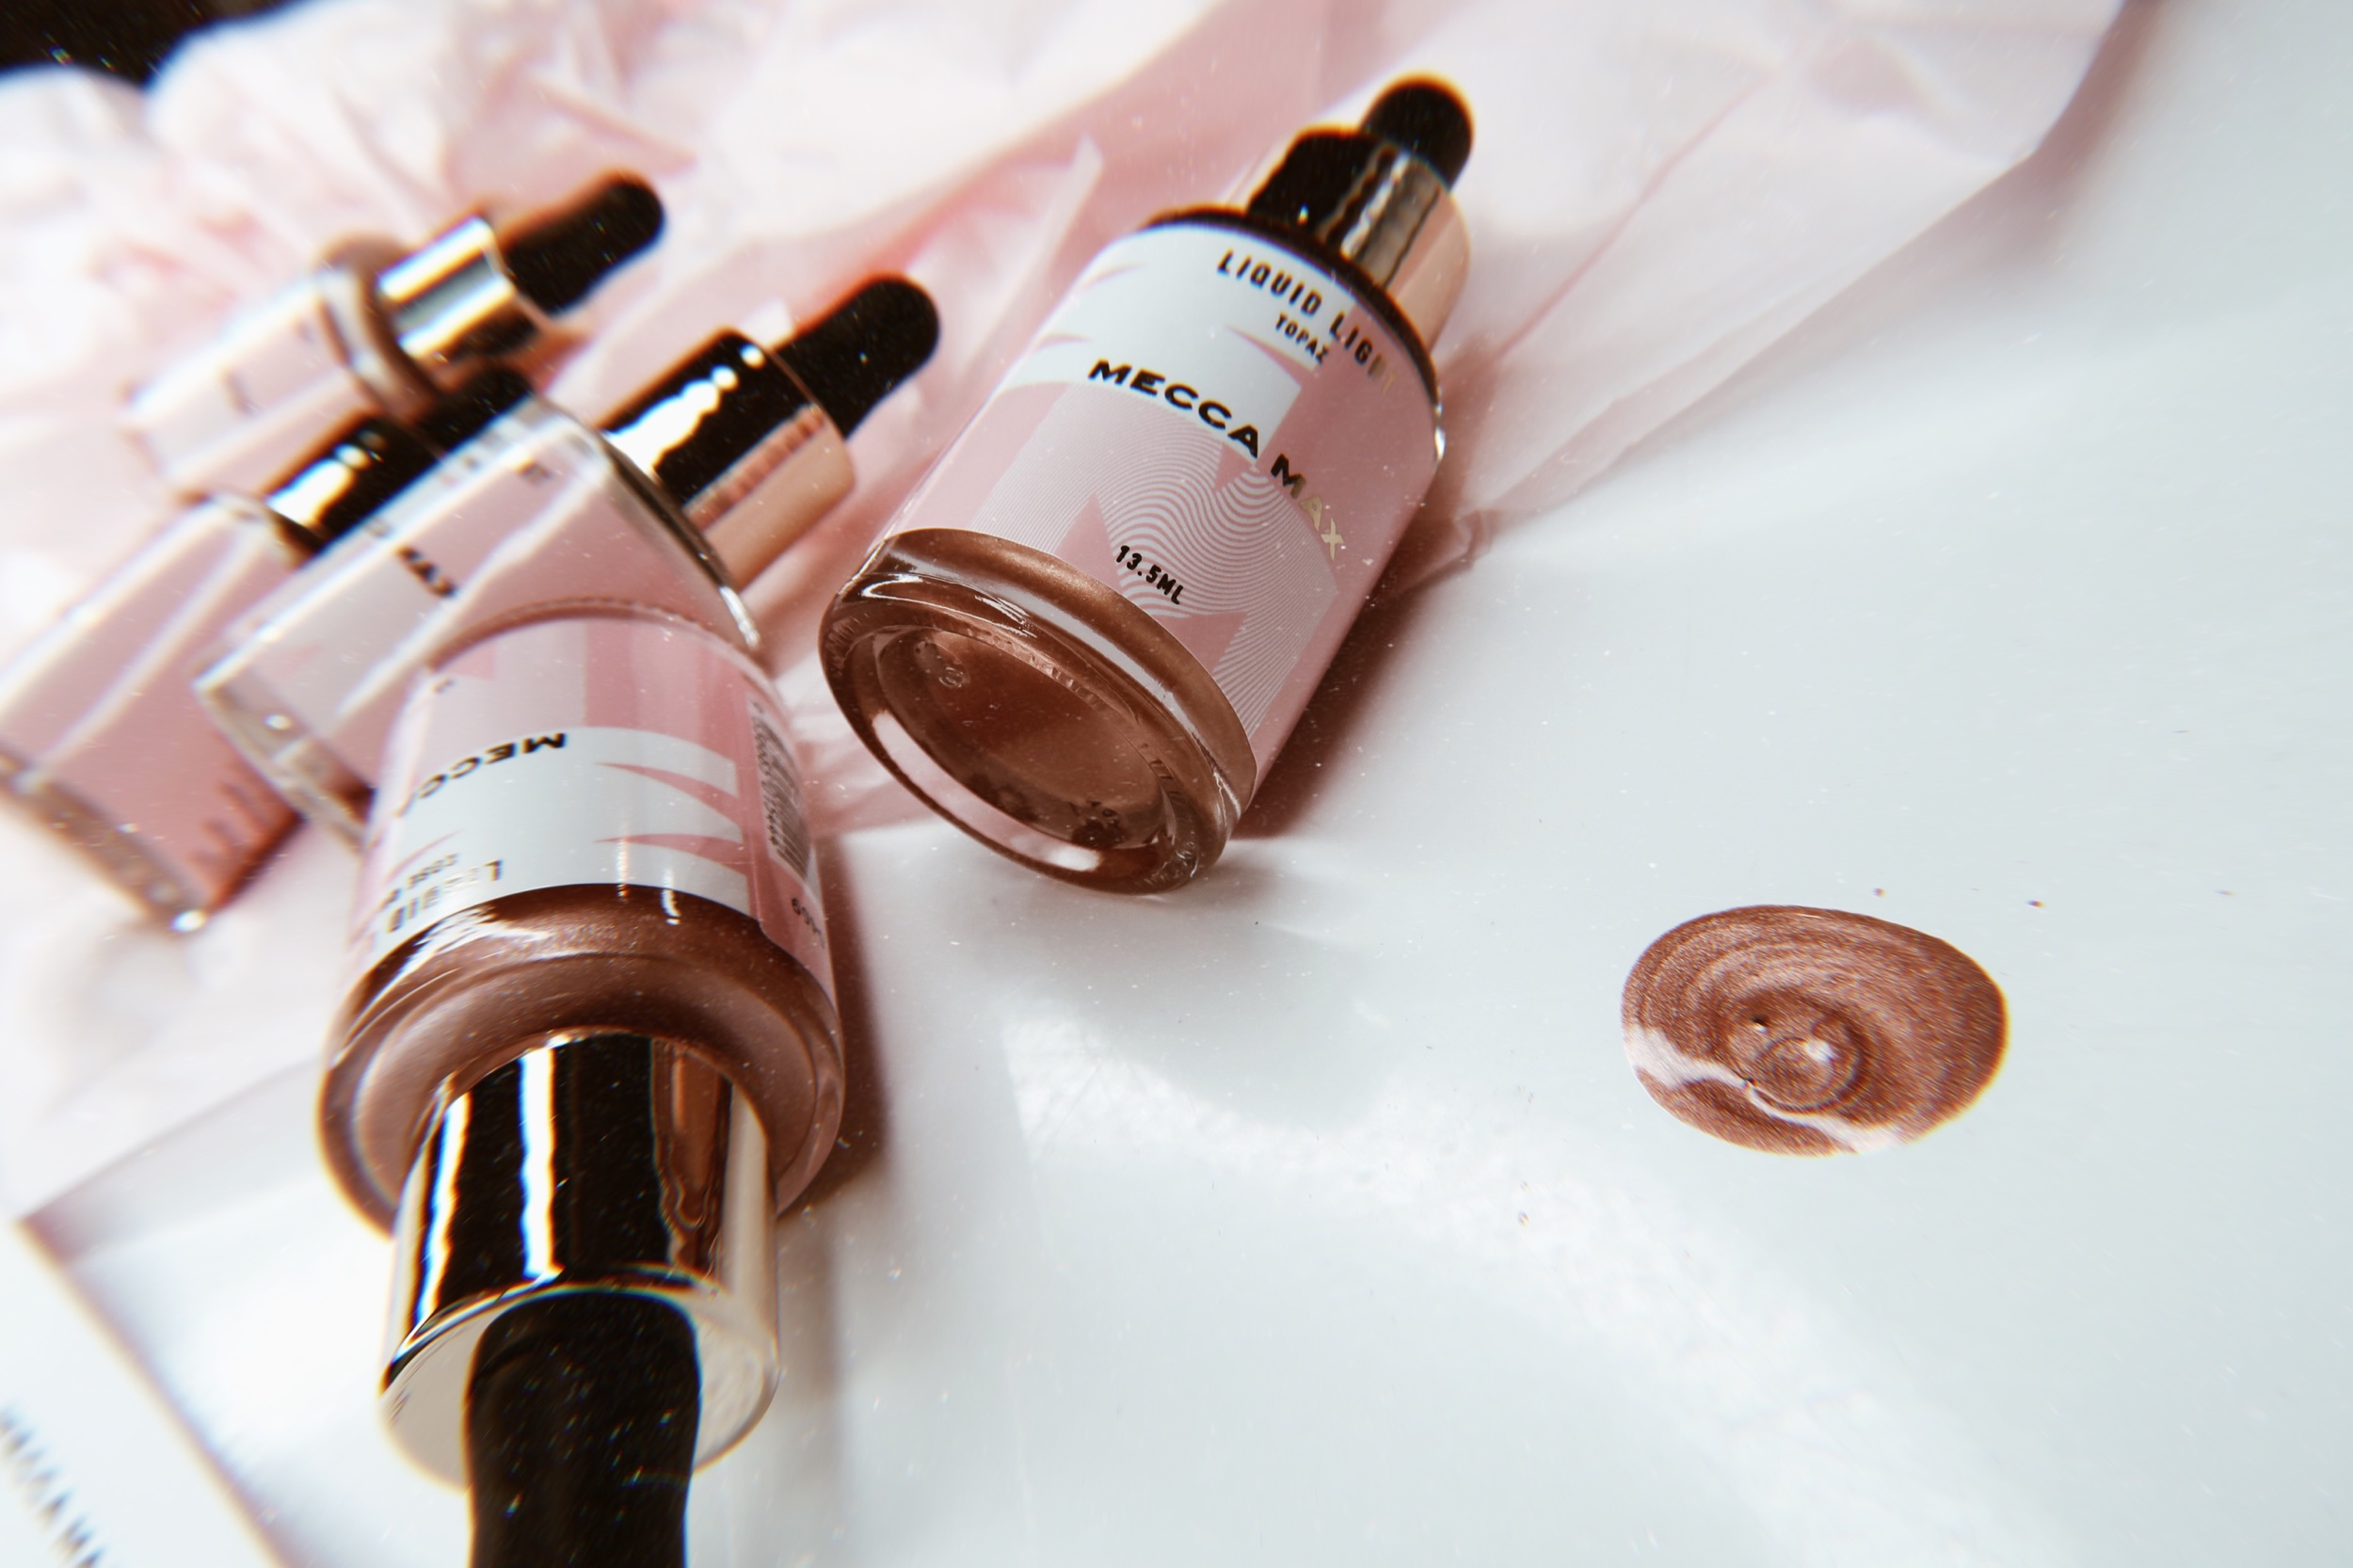 MECCA MAX Liquid Light Highlighter in the new limited edition 'Rose Quartz' shade